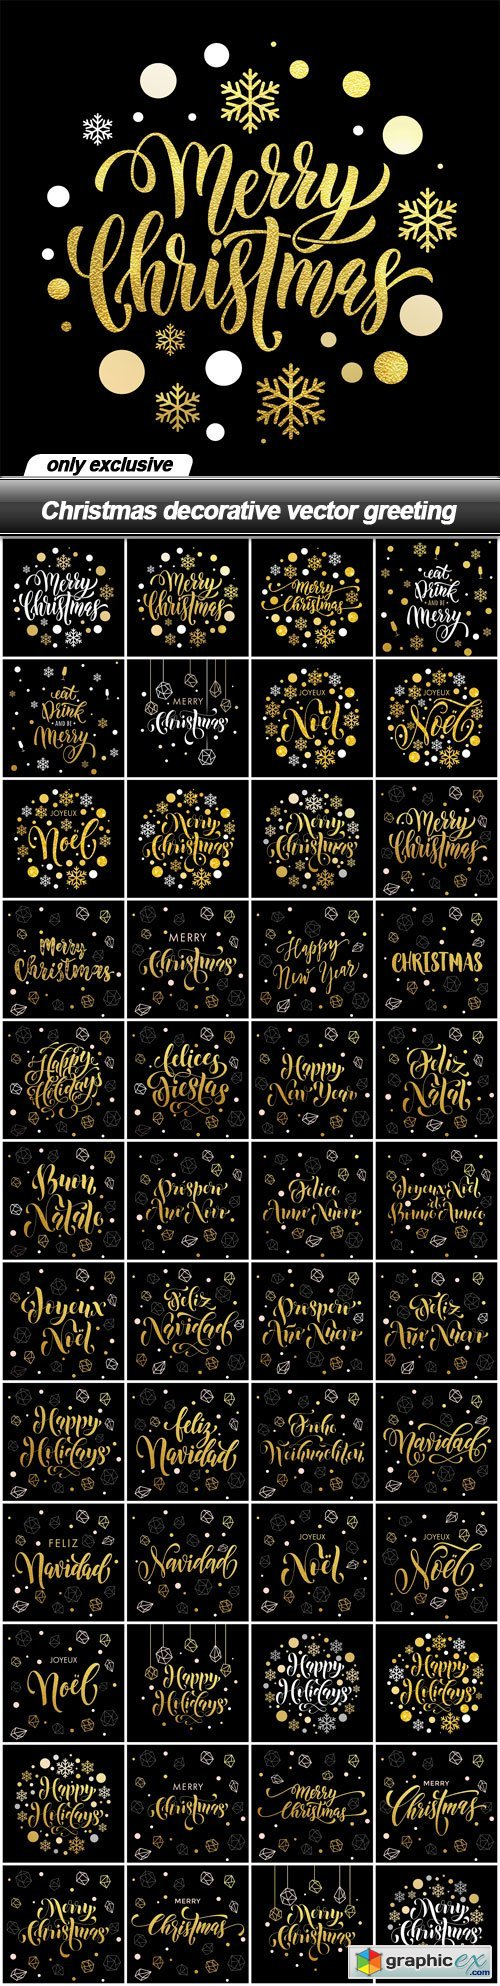 Christmas decorative vector greeting - 48 EPS